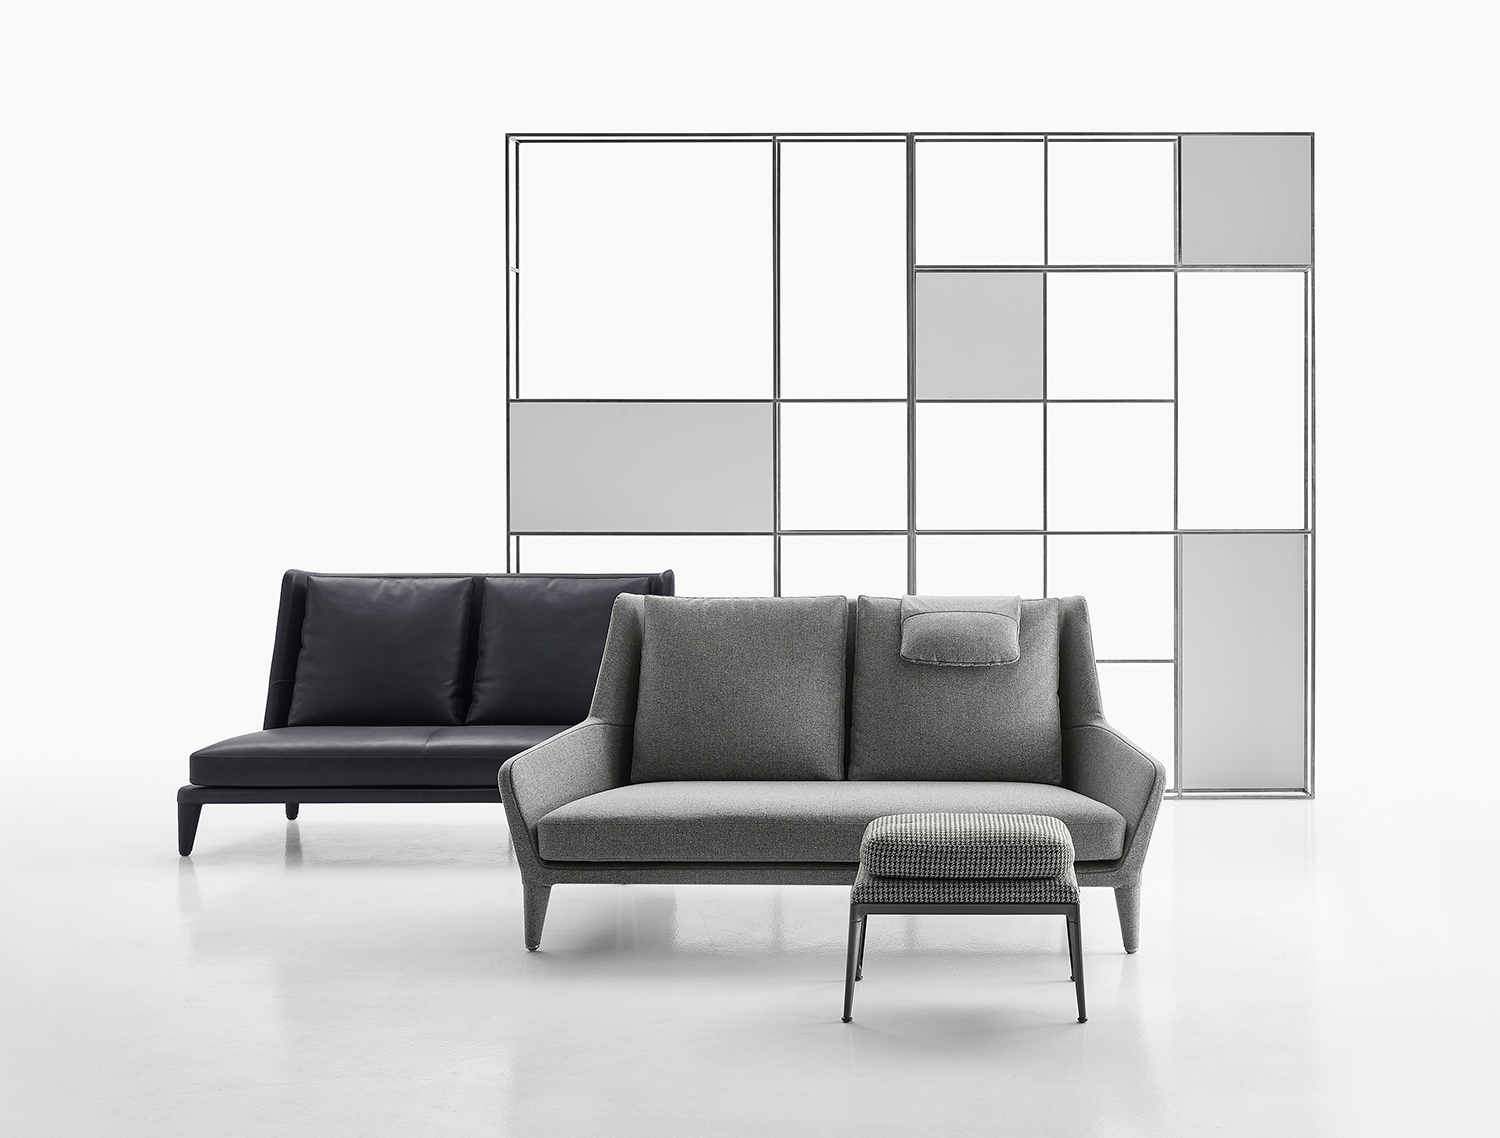 Antonio Citterio City Sofa B B Italia Édouard Sofa And Armchair Range Milan News 2017